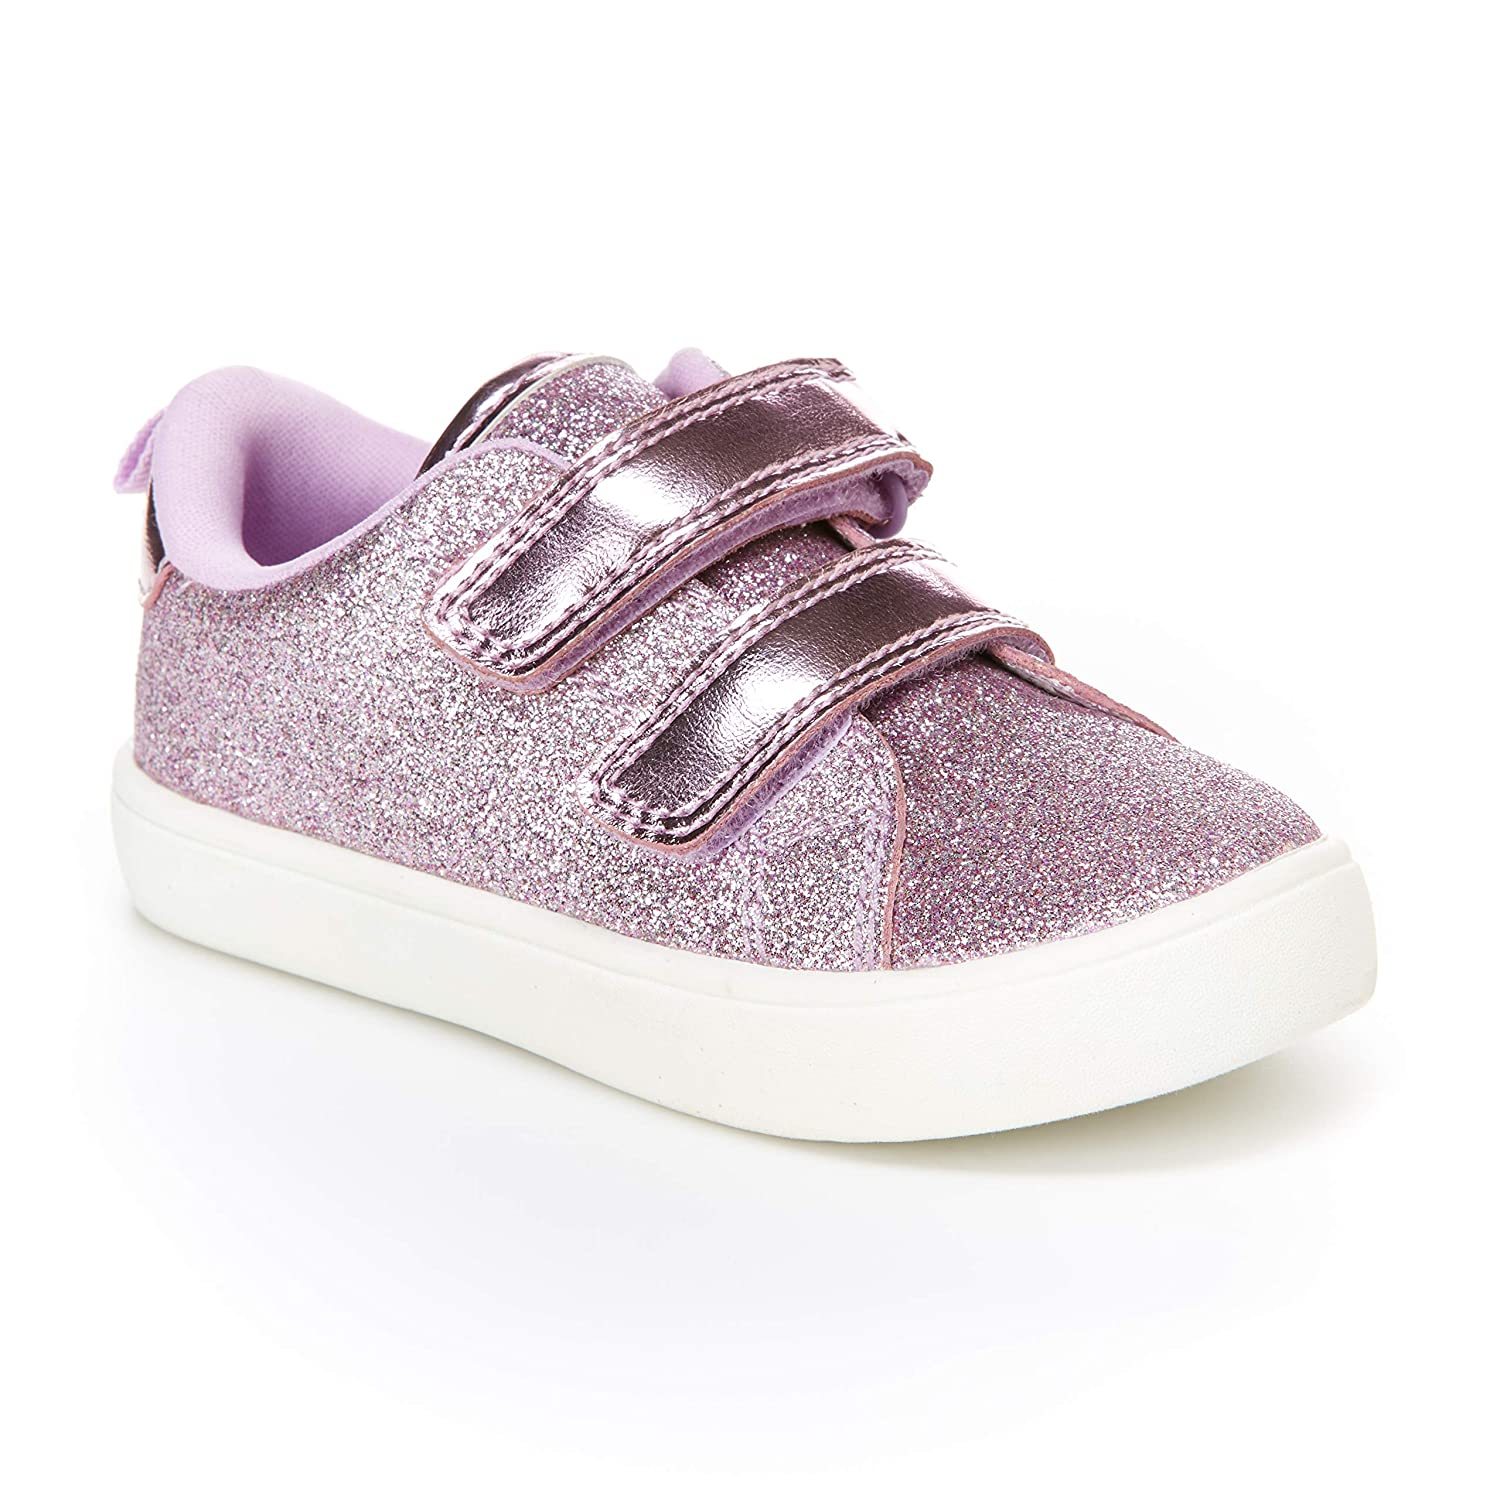 Carters Kids Girls Darla Casual Sneaker with Double Adjustable Strap